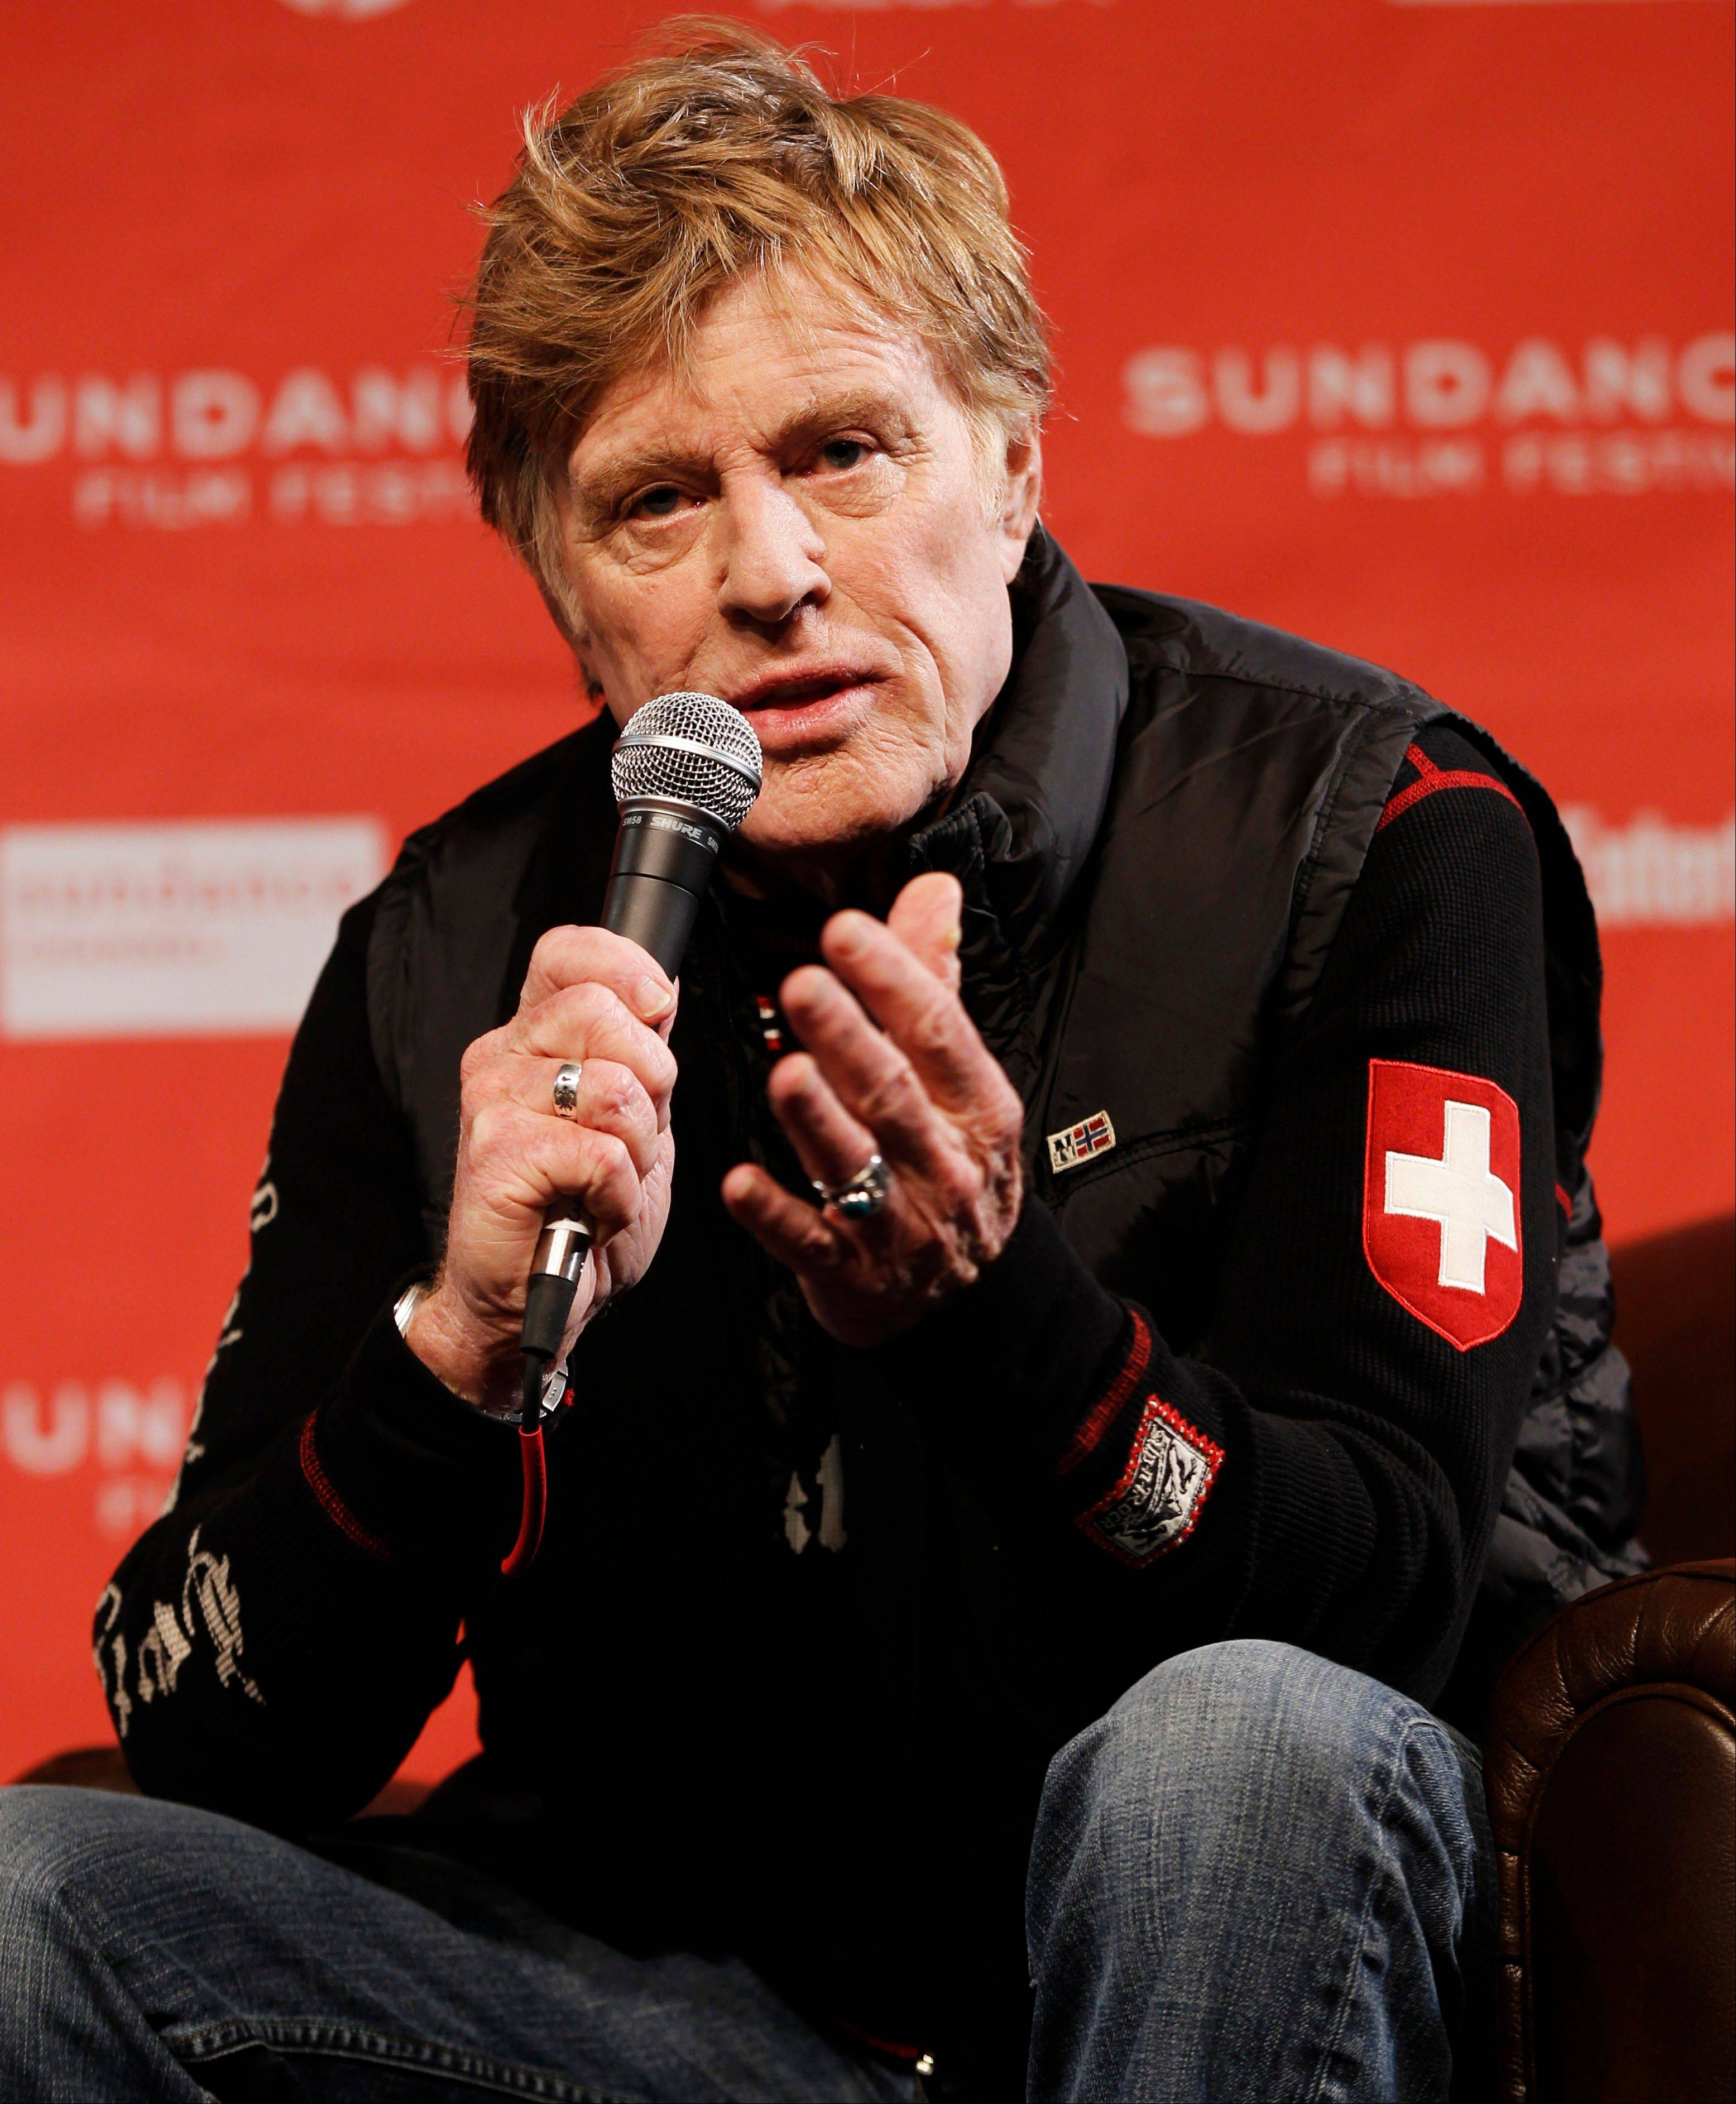 Actor Robert Redford is among the 100 celebrities leading �Artists Against Fracking.� Hydraulic fracturing, a new practice colloquially known as fracking that involves injecting water into underground rock to free vast reserves of gas, has been linked to documented cases of leaking gas ruining nearby well water, of air pollution, and of problems from the waste the drilling generates.